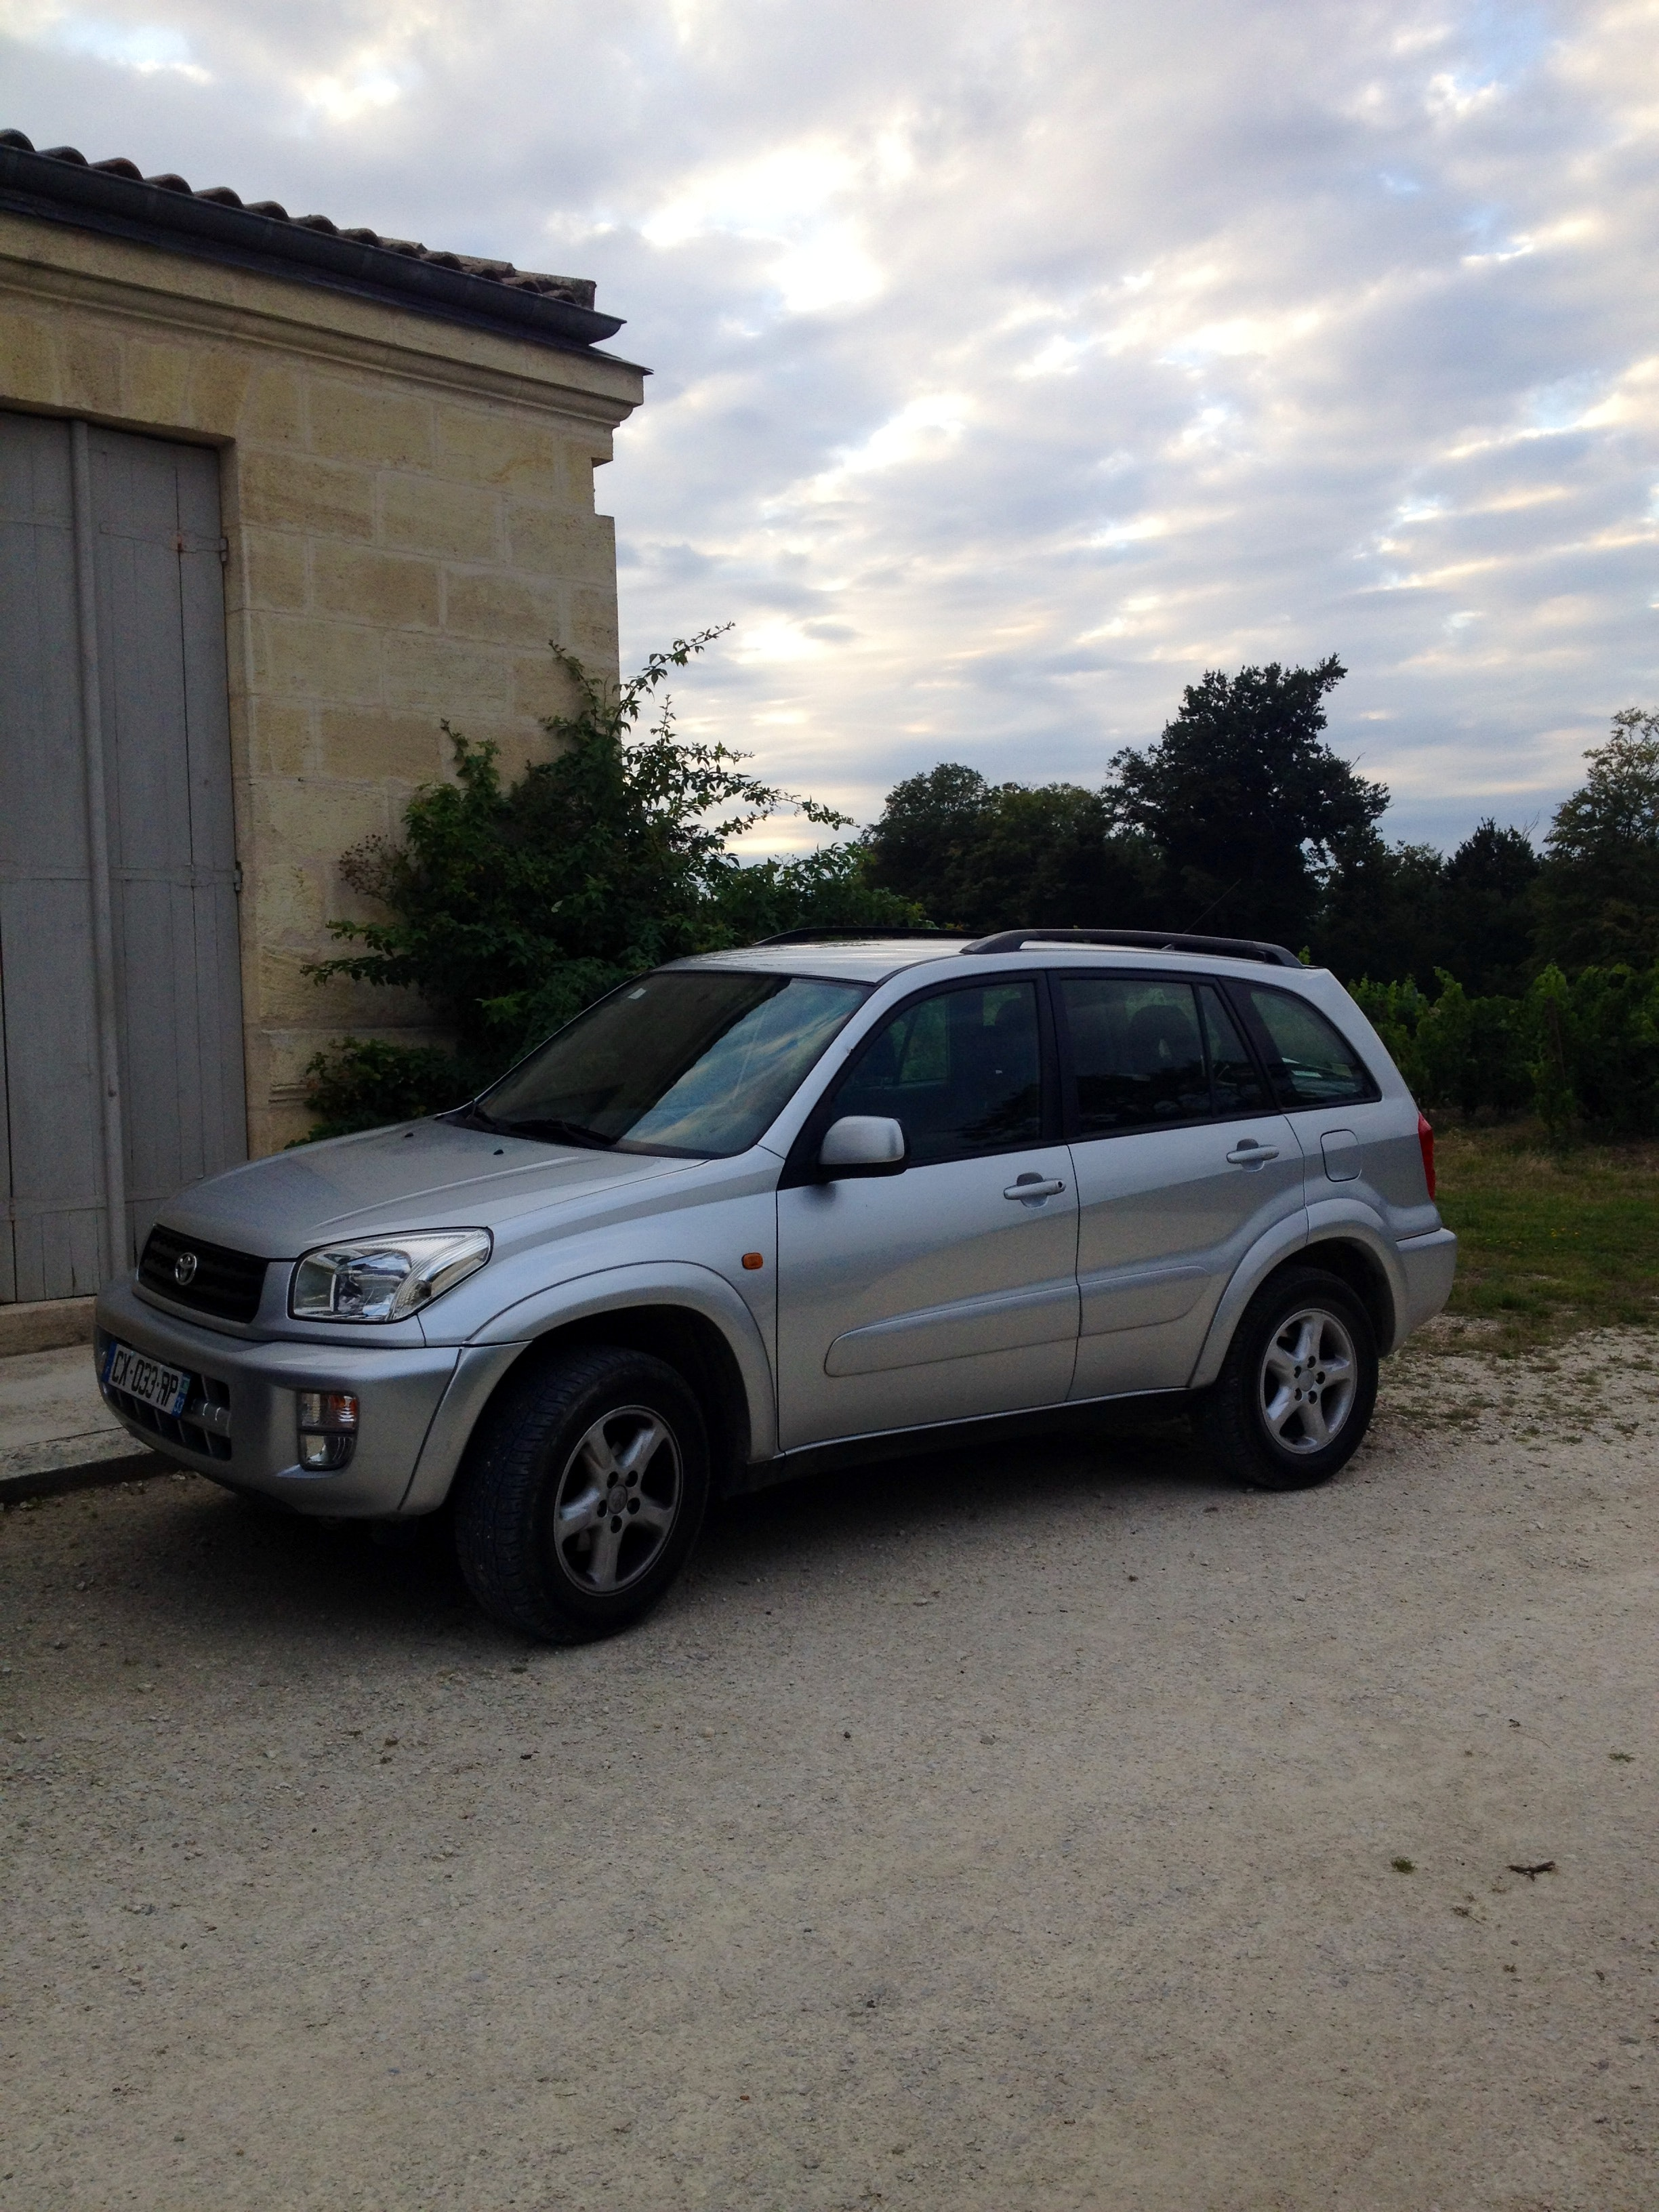 Toyota Rav 4, 2003, Essence, automatique